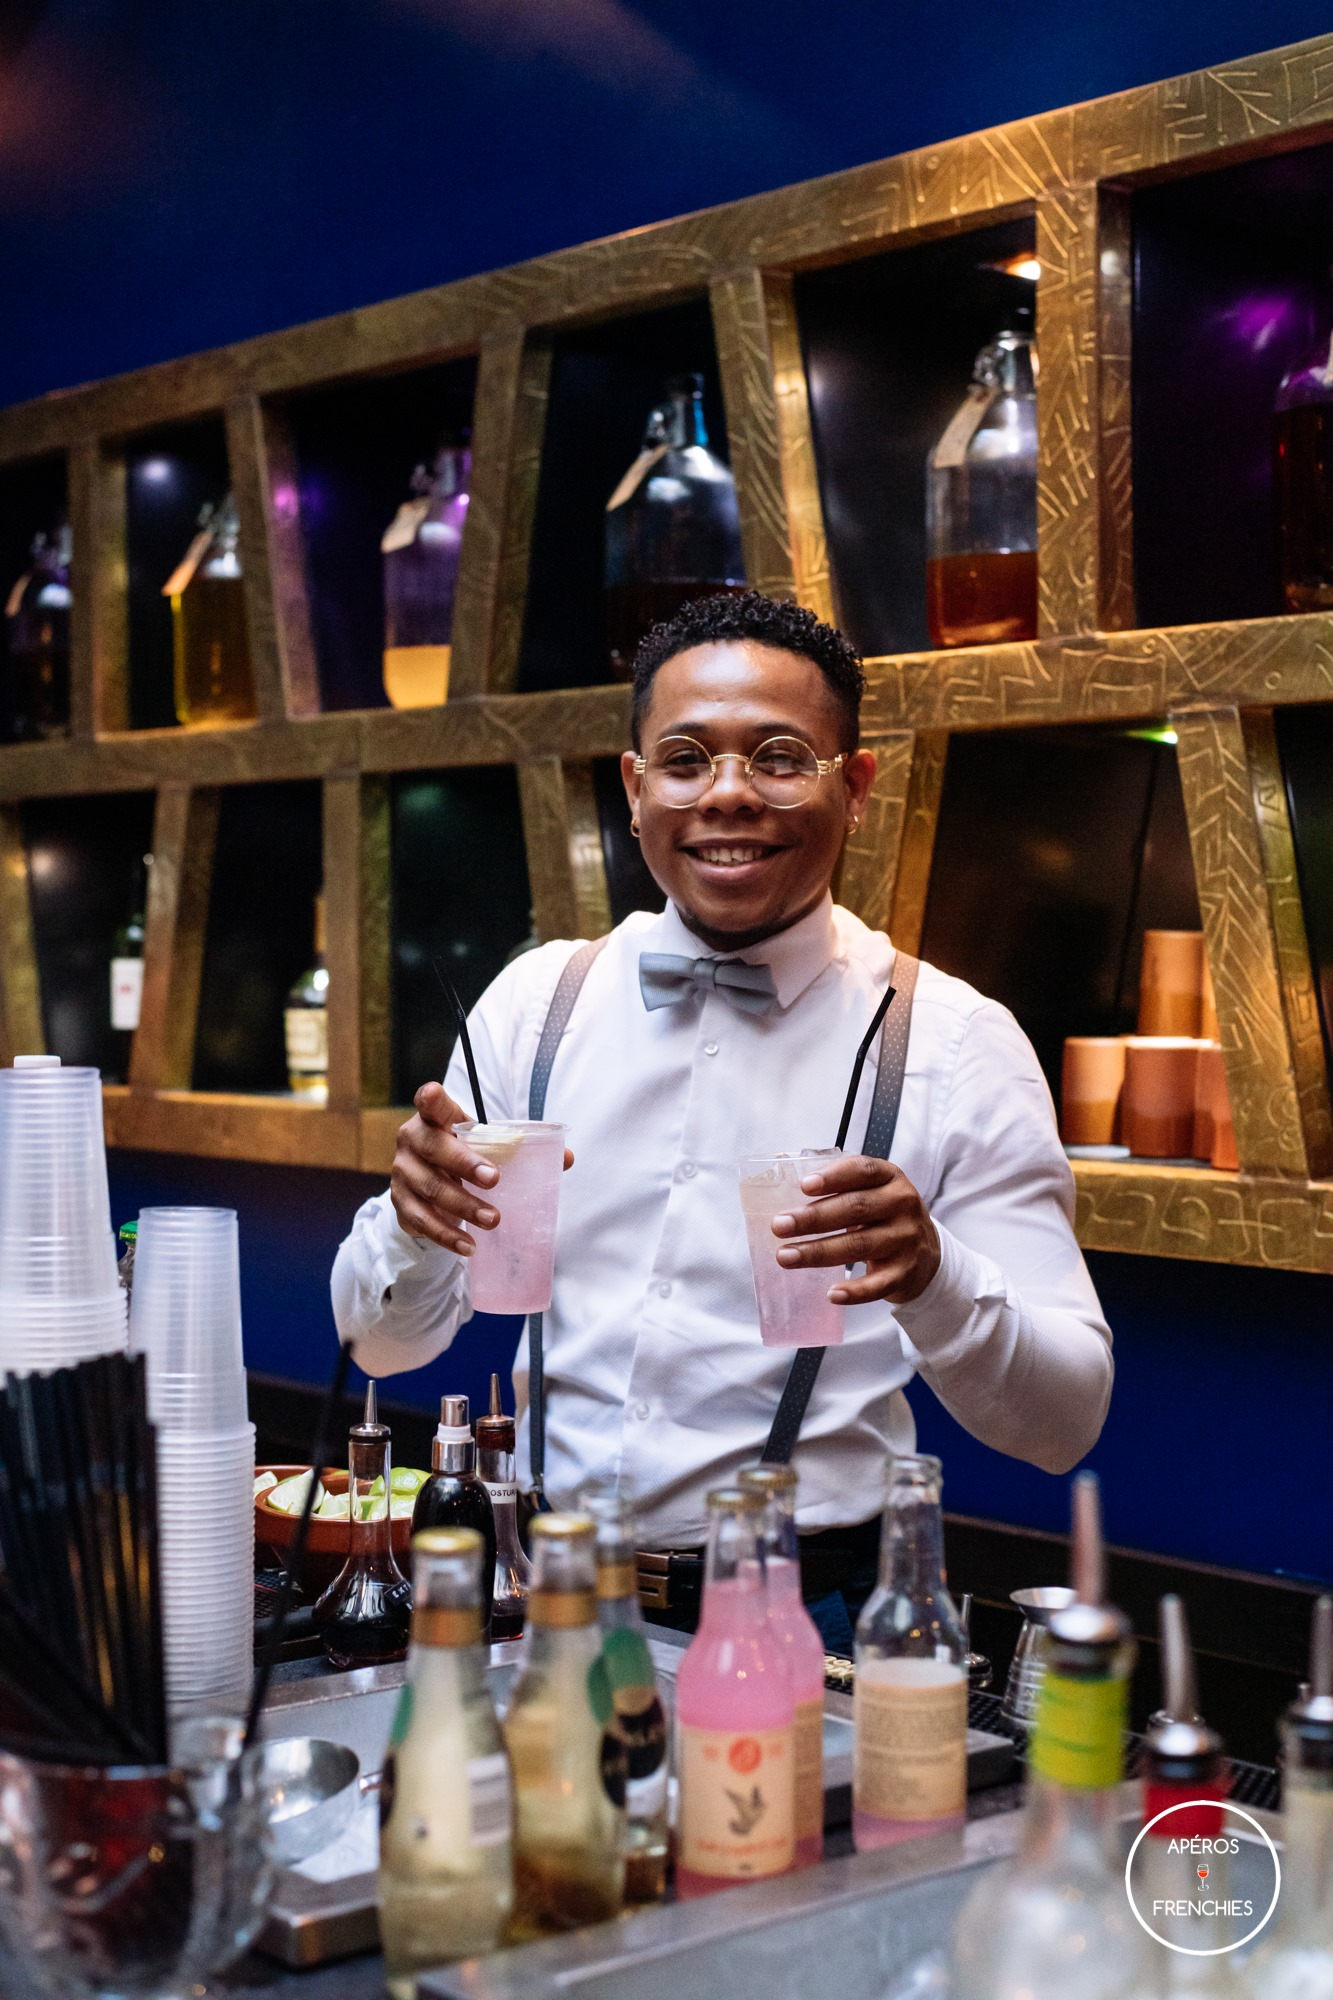 Bartender 1k Paris